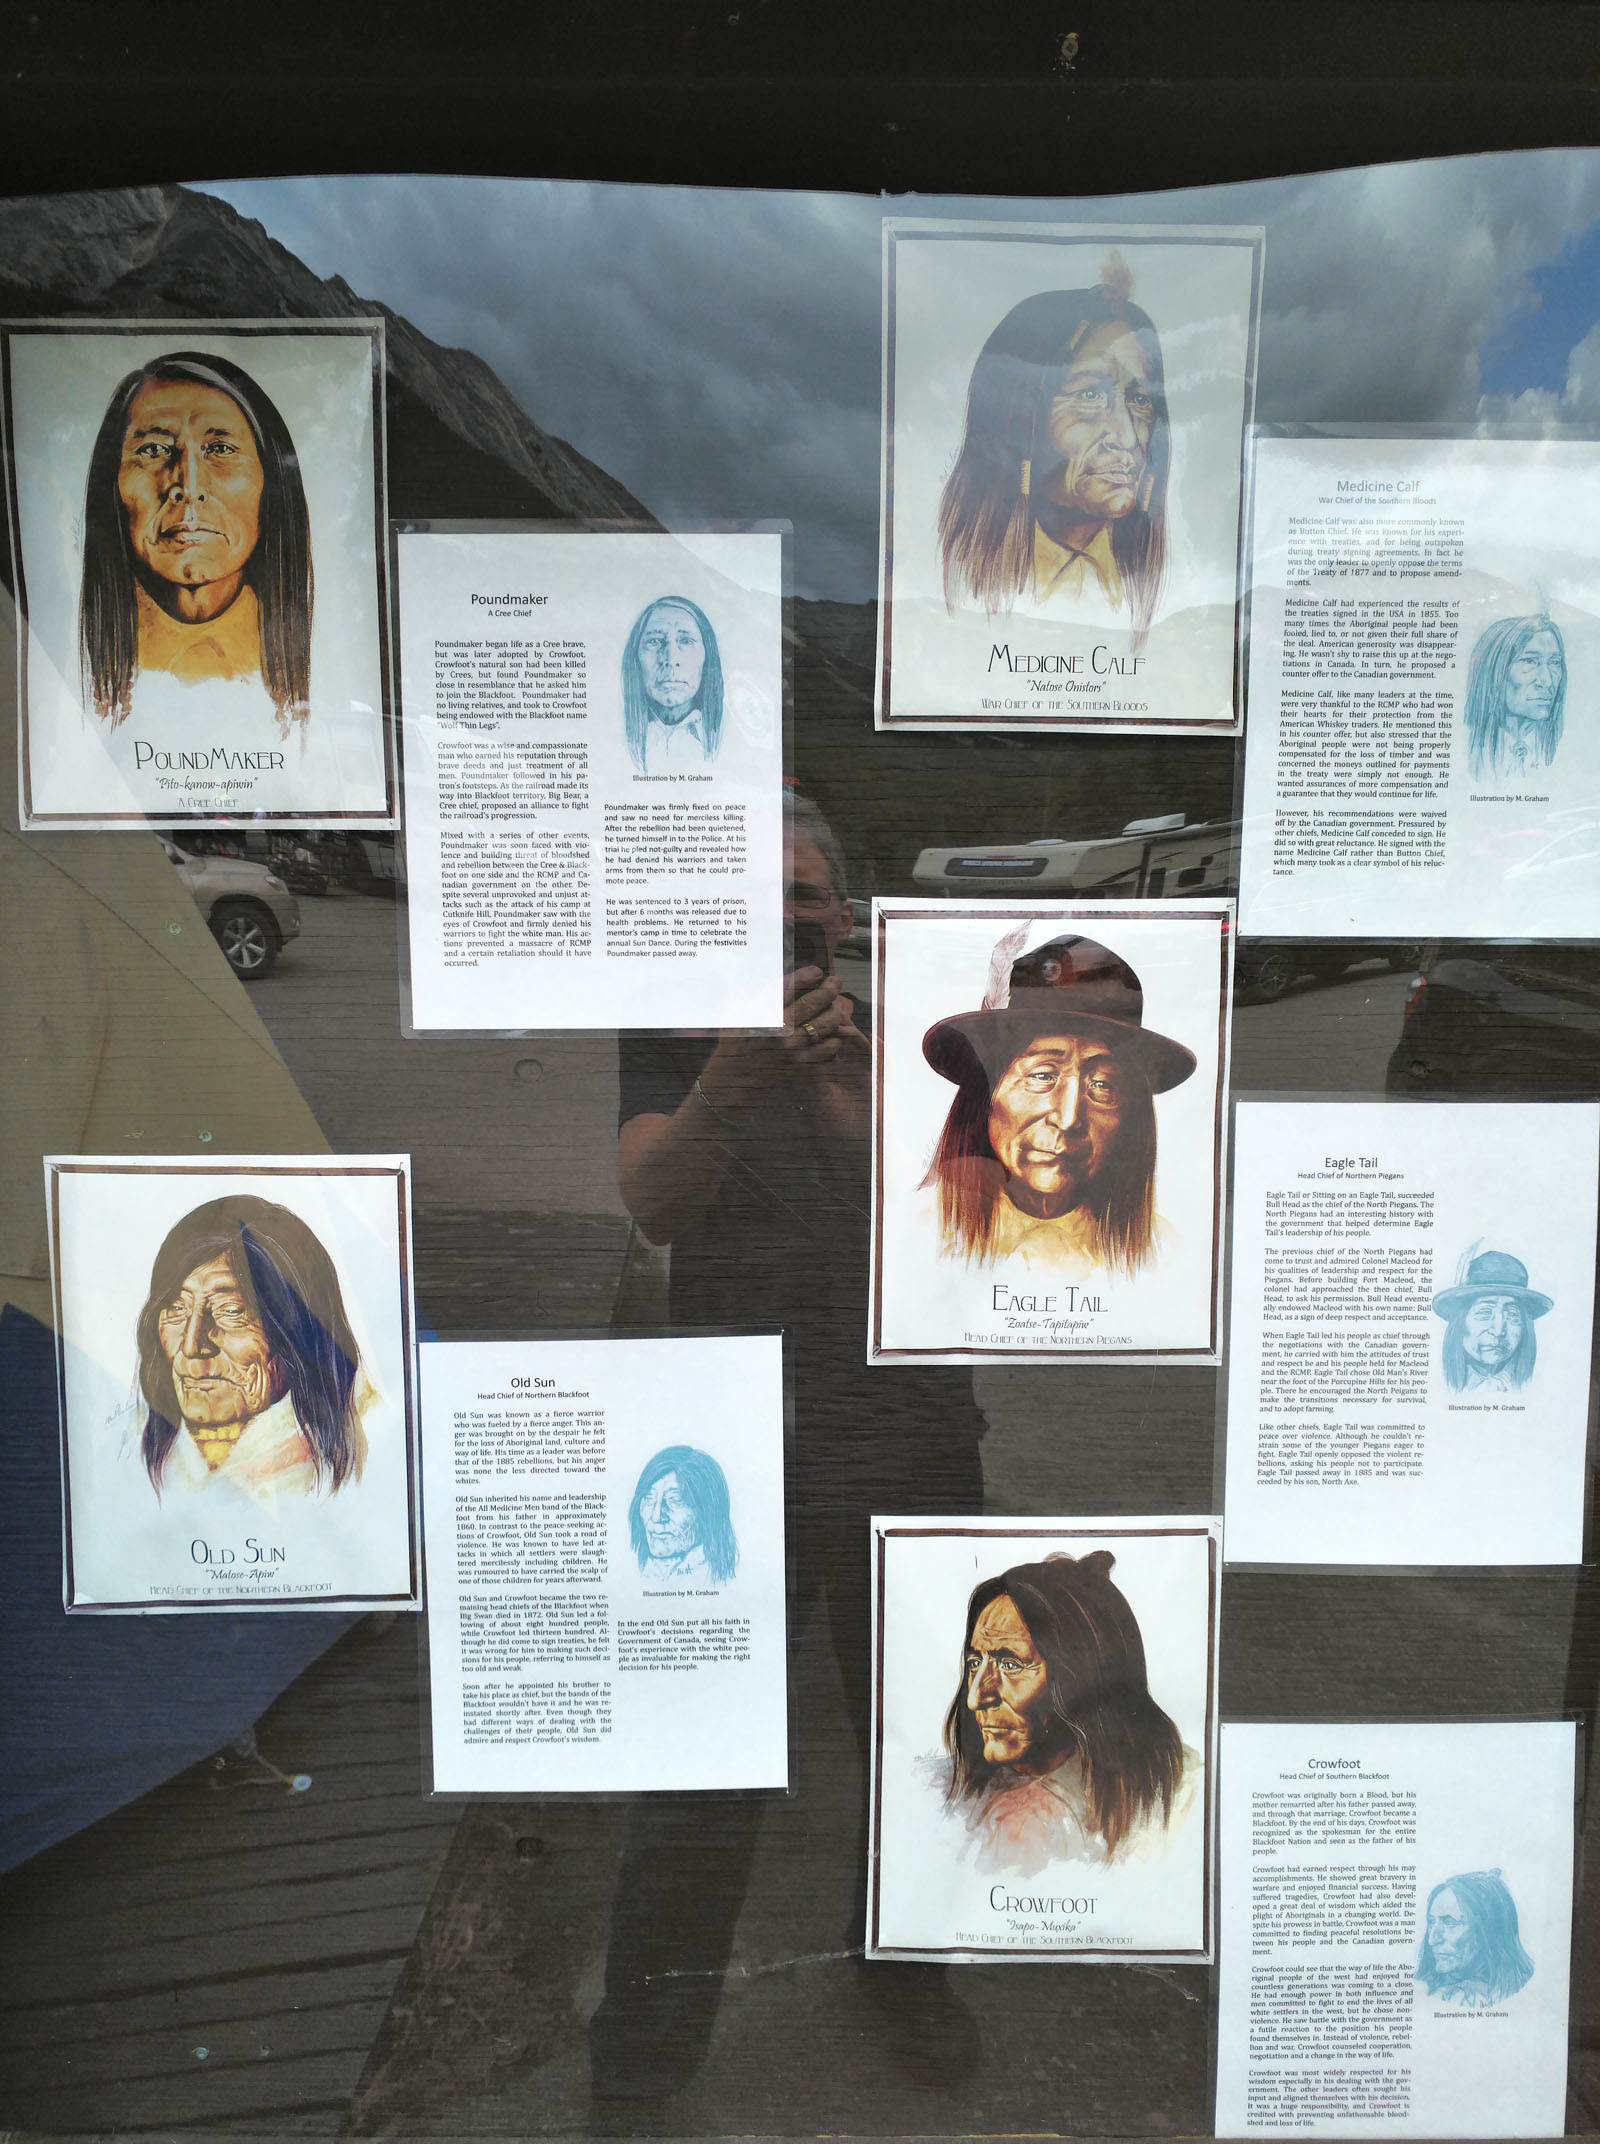 Portraits and biographies of prominent Aboriginal chiefs from the 1800s on display outside the Sunwapta Falls Rocky Mountain Lodge tell a painful story of history in the region. (Craig Davis/craigslegztravels.com)